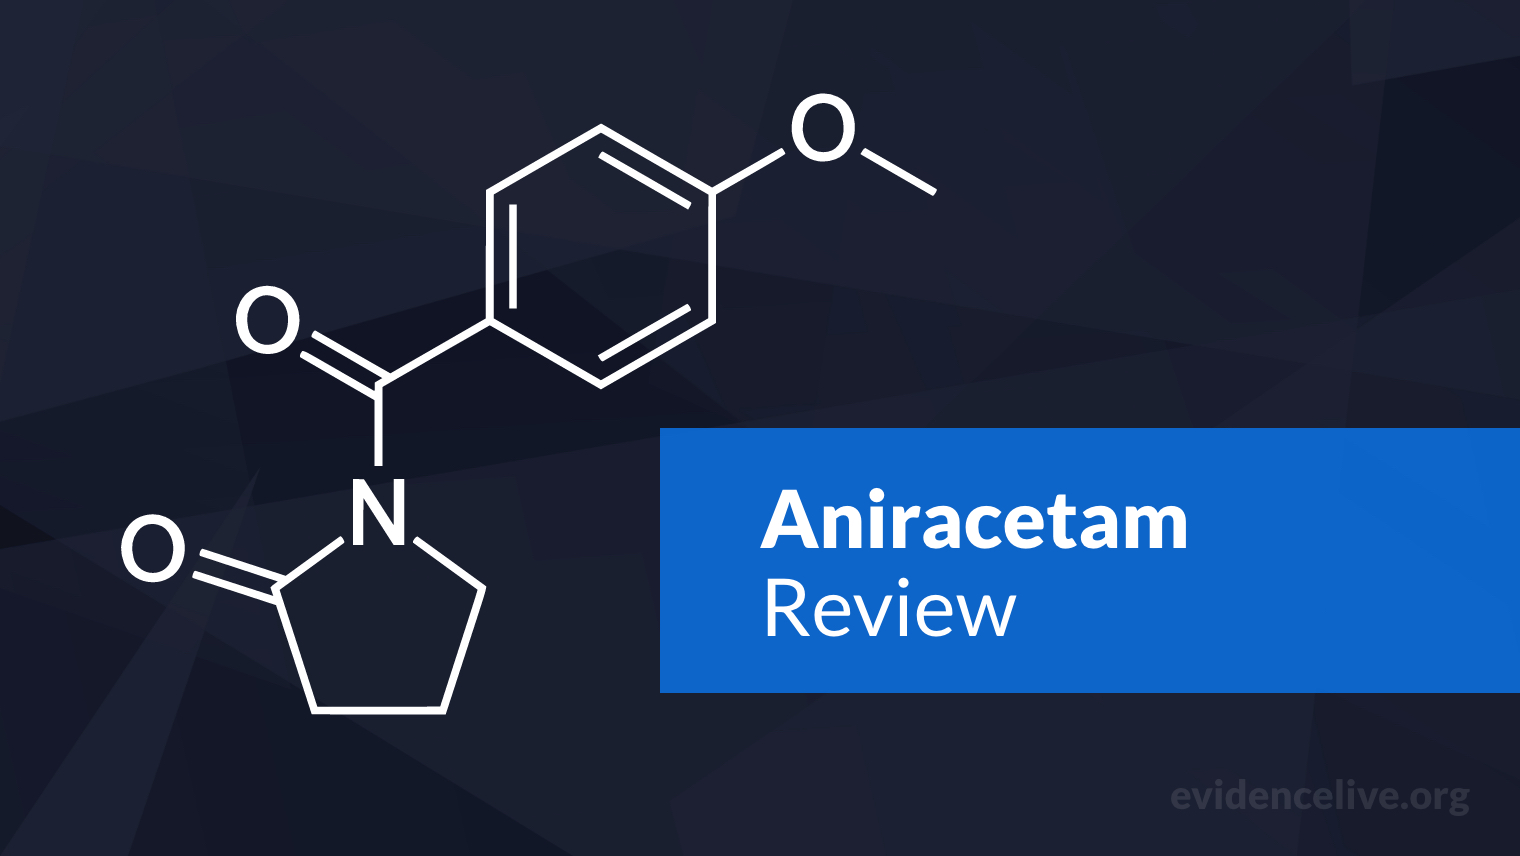 Aniracetam: Benefits, Uses, Dosage, and Side Effects